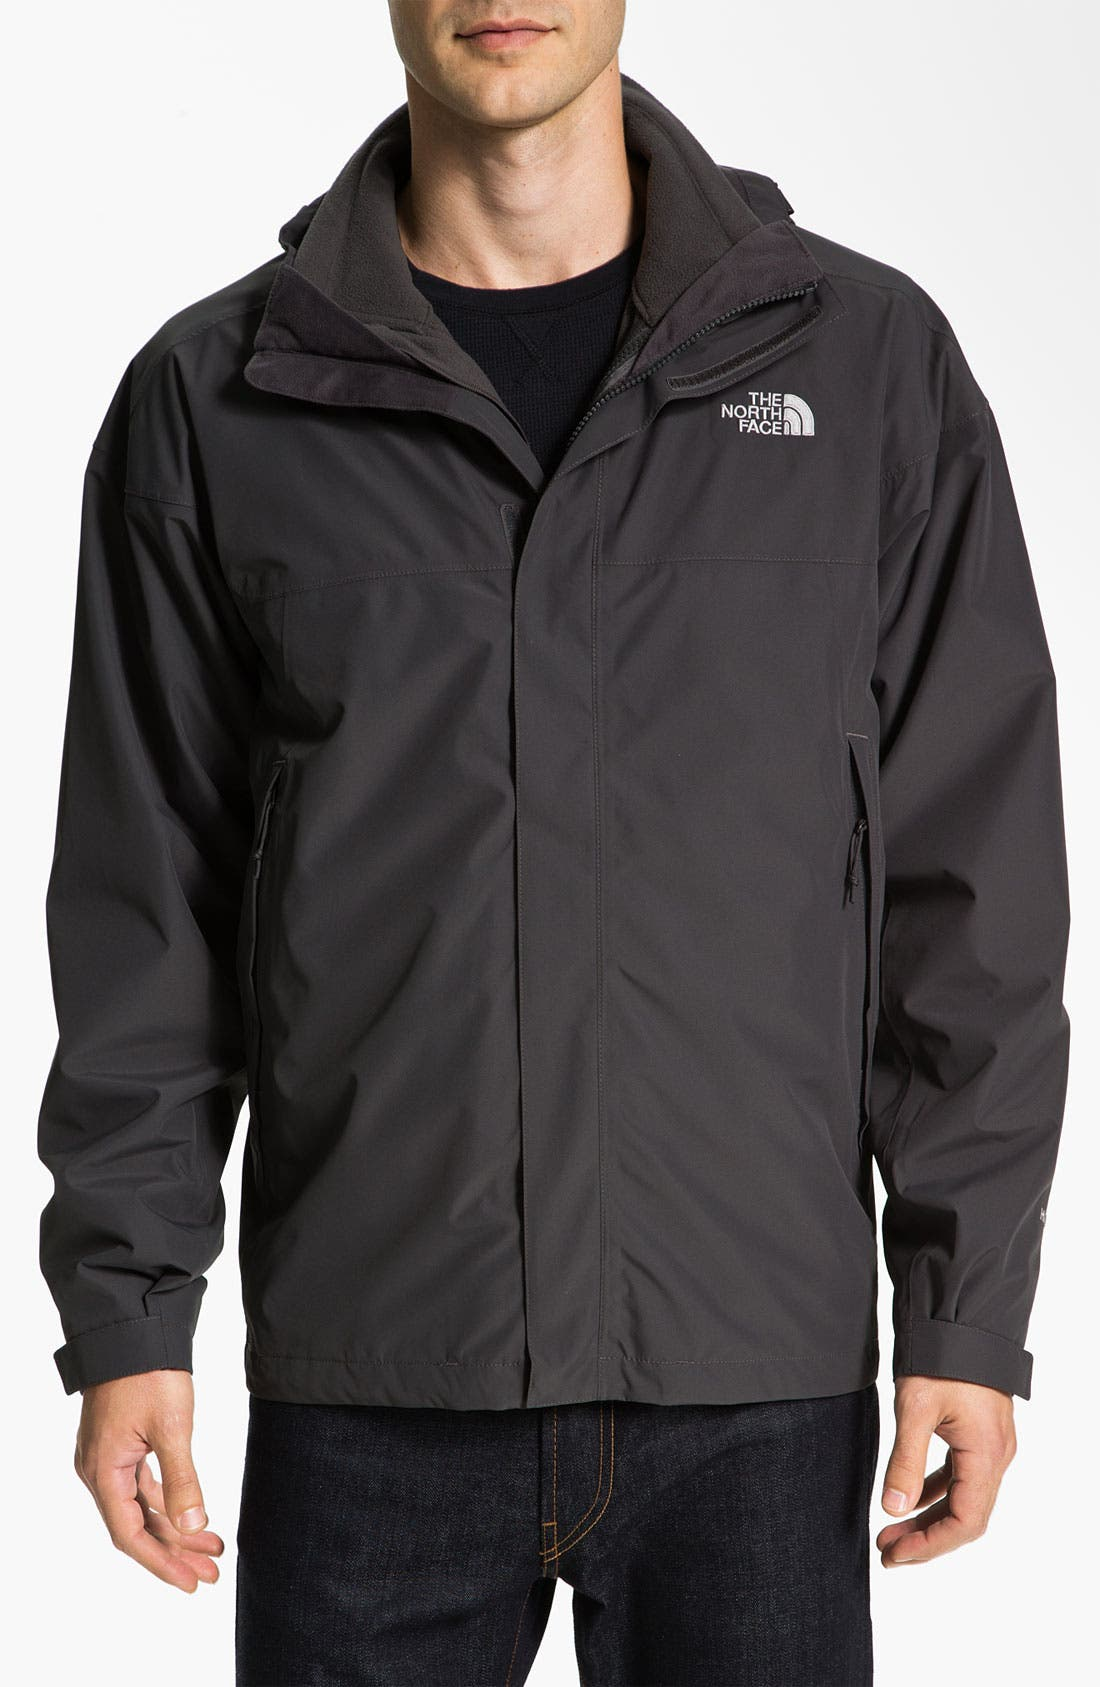 Alternate Image 1 Selected - The North Face 'Phere' TriClimate™ 3-in-1 Jacket